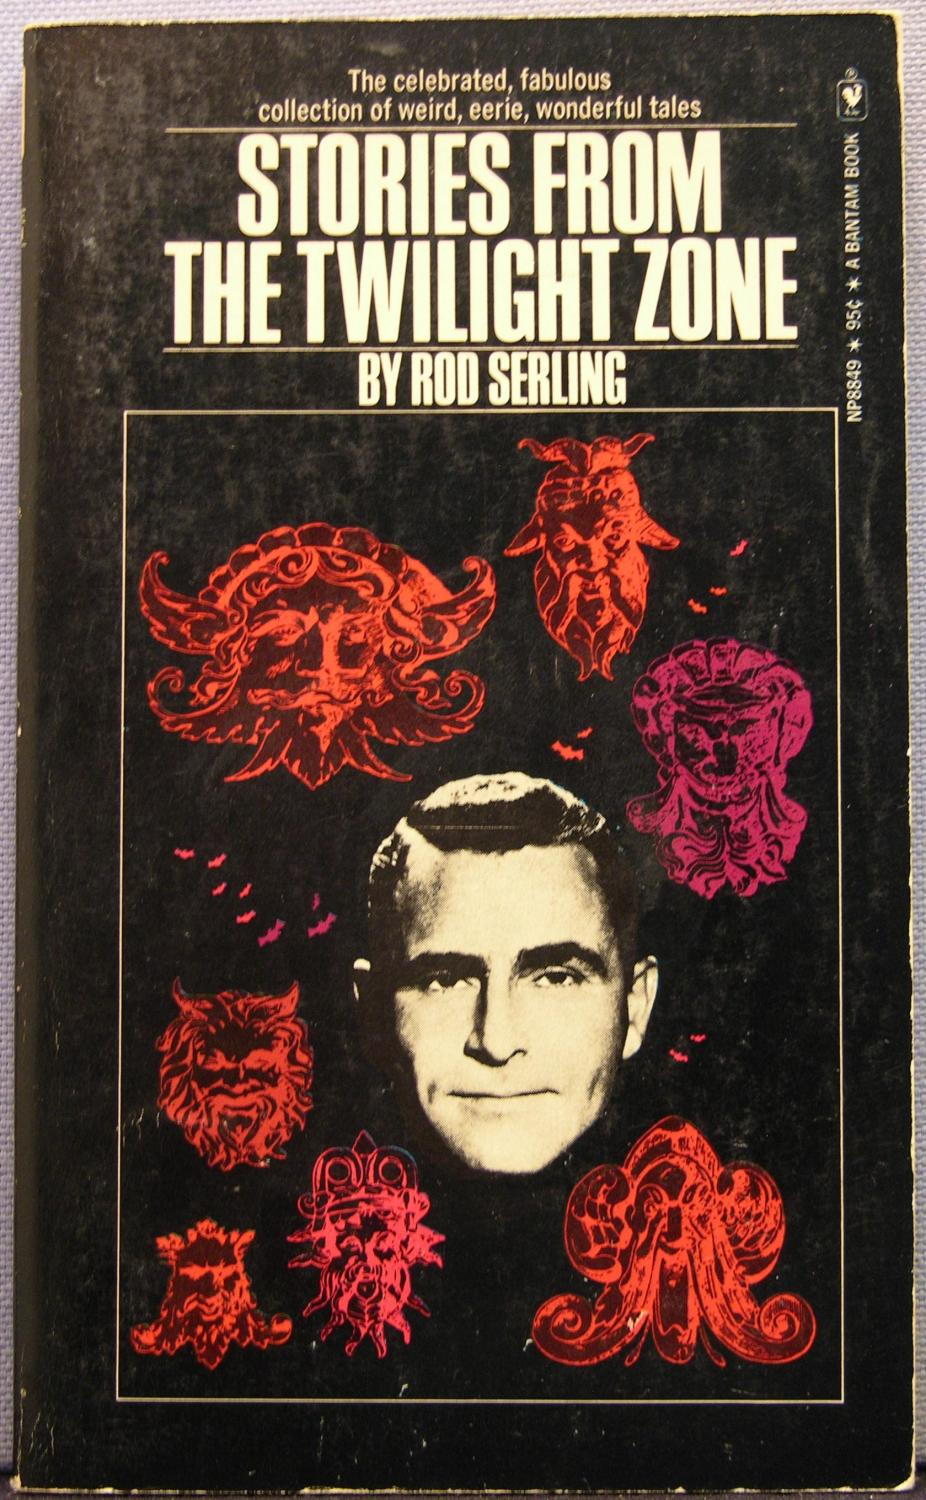 """an analysis of the twilight zone a 1960s show written by rod serling Twilight zone analysis a science fiction fantasy show written by rod serling cbs television distribution, 1960 film """"rod serling"""" 2014."""